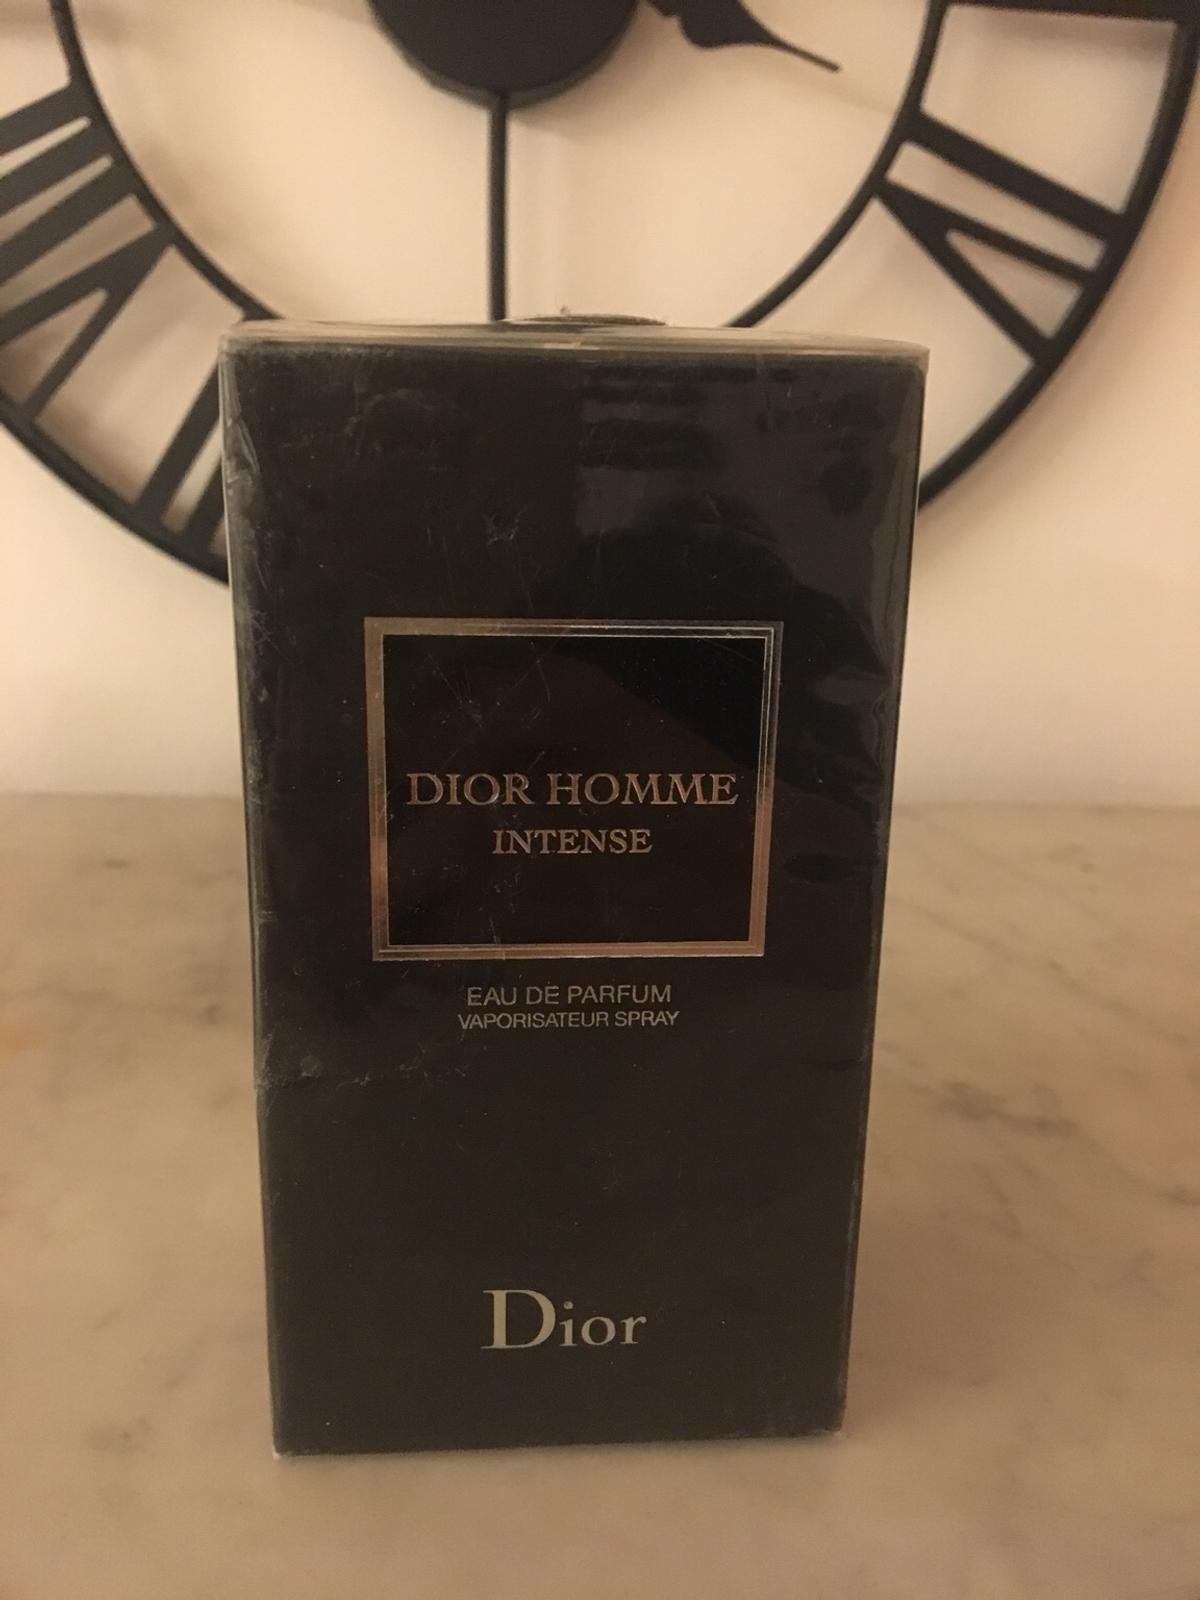 Dior Homme Intense Eau De Parfum New In W4 Ealing For 8000 For